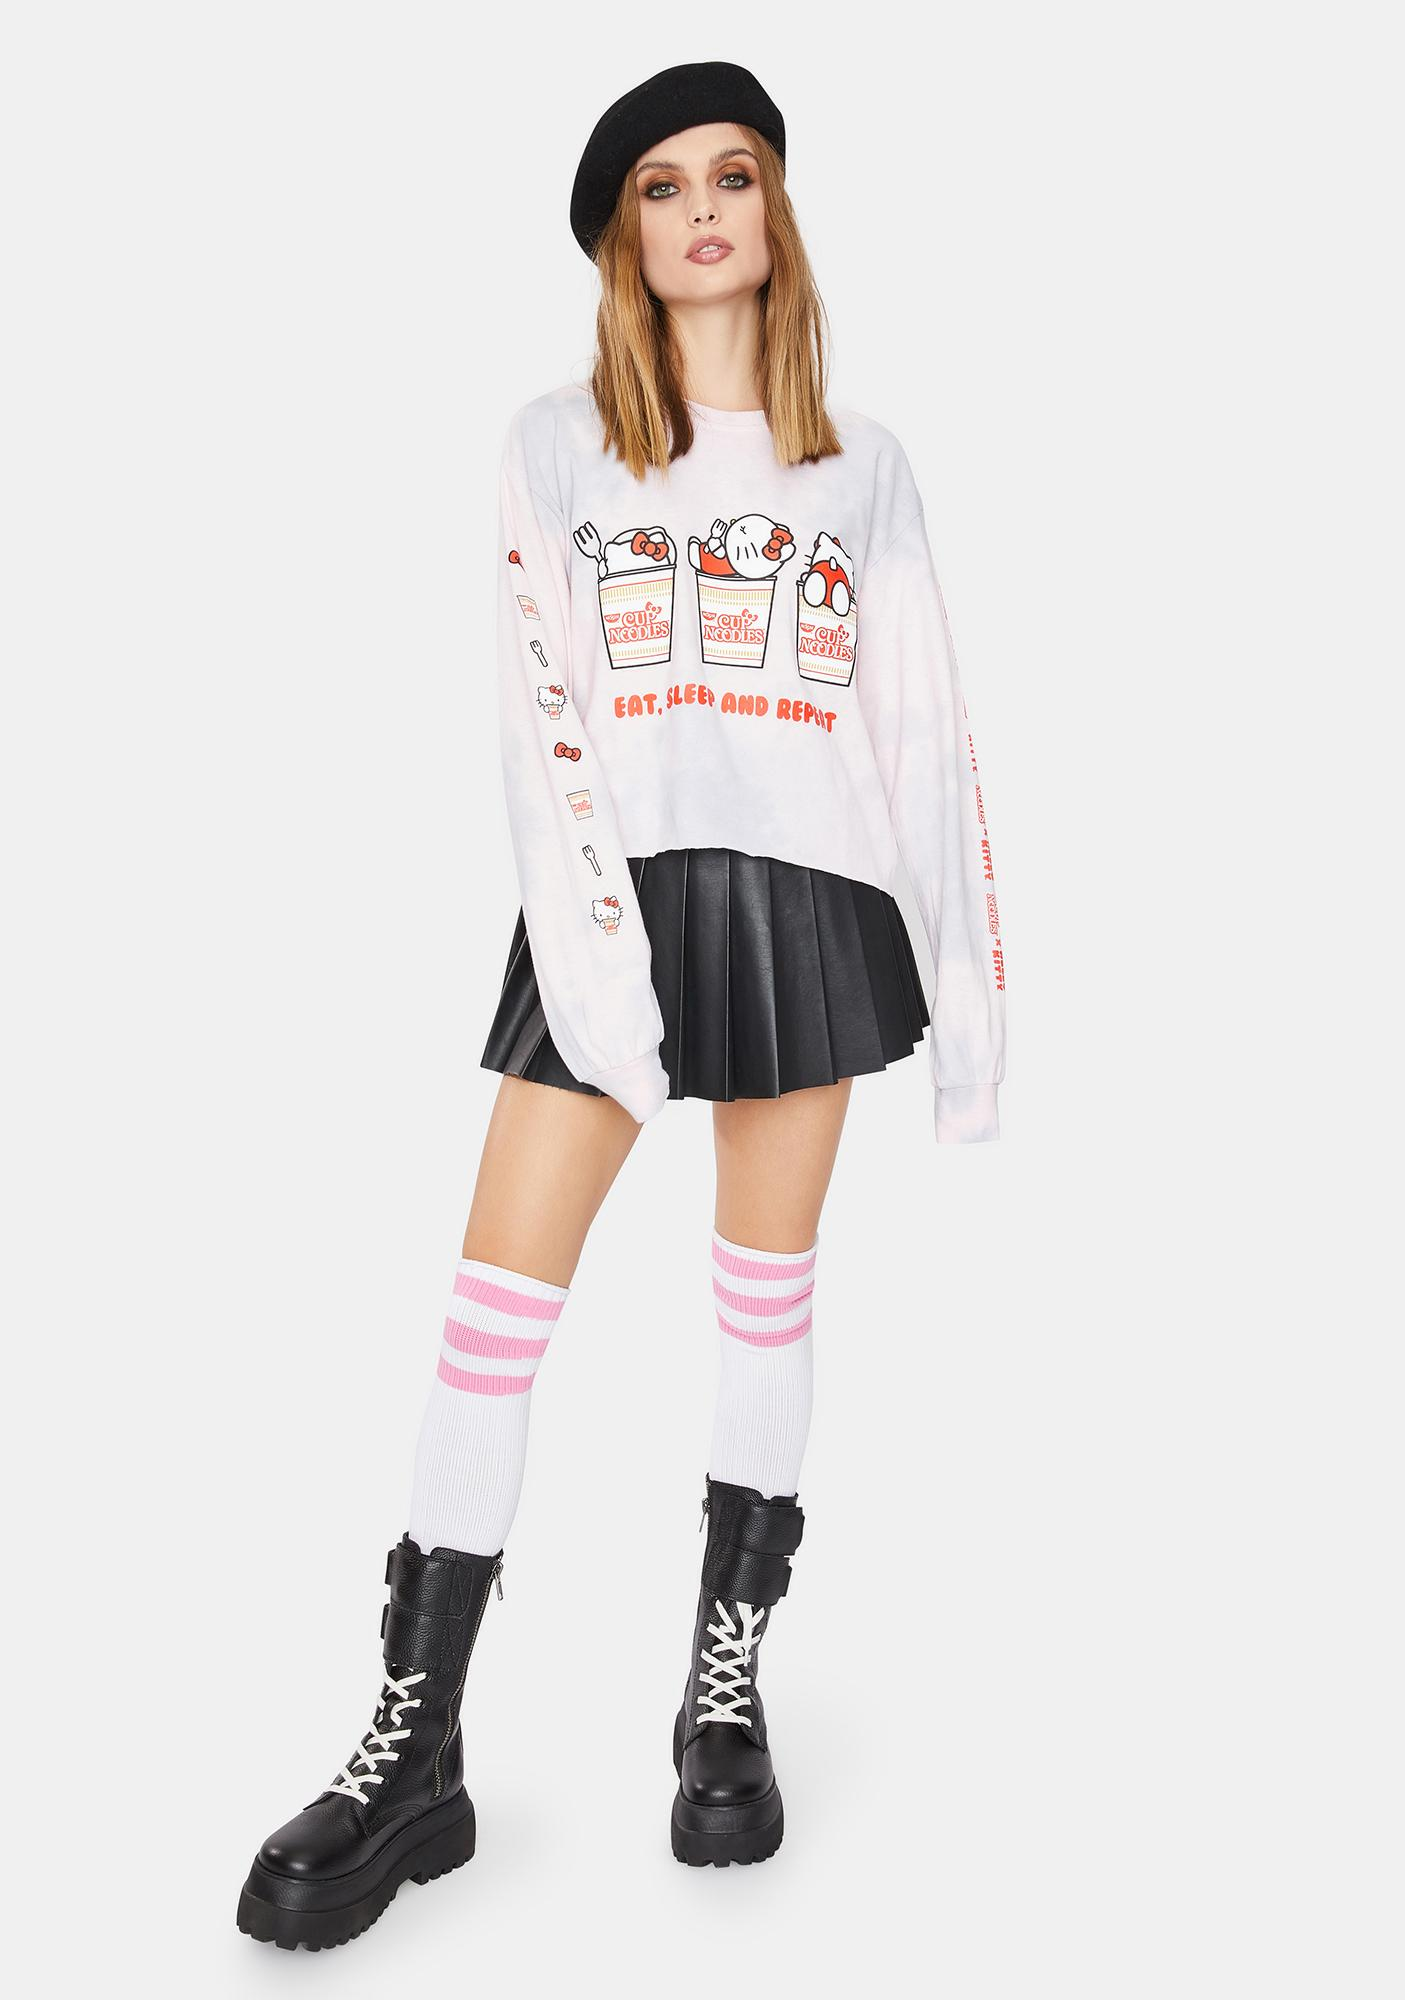 Hello Kitty x Cup Noodles Eat Sleep Repeat Cropped Graphic Tee